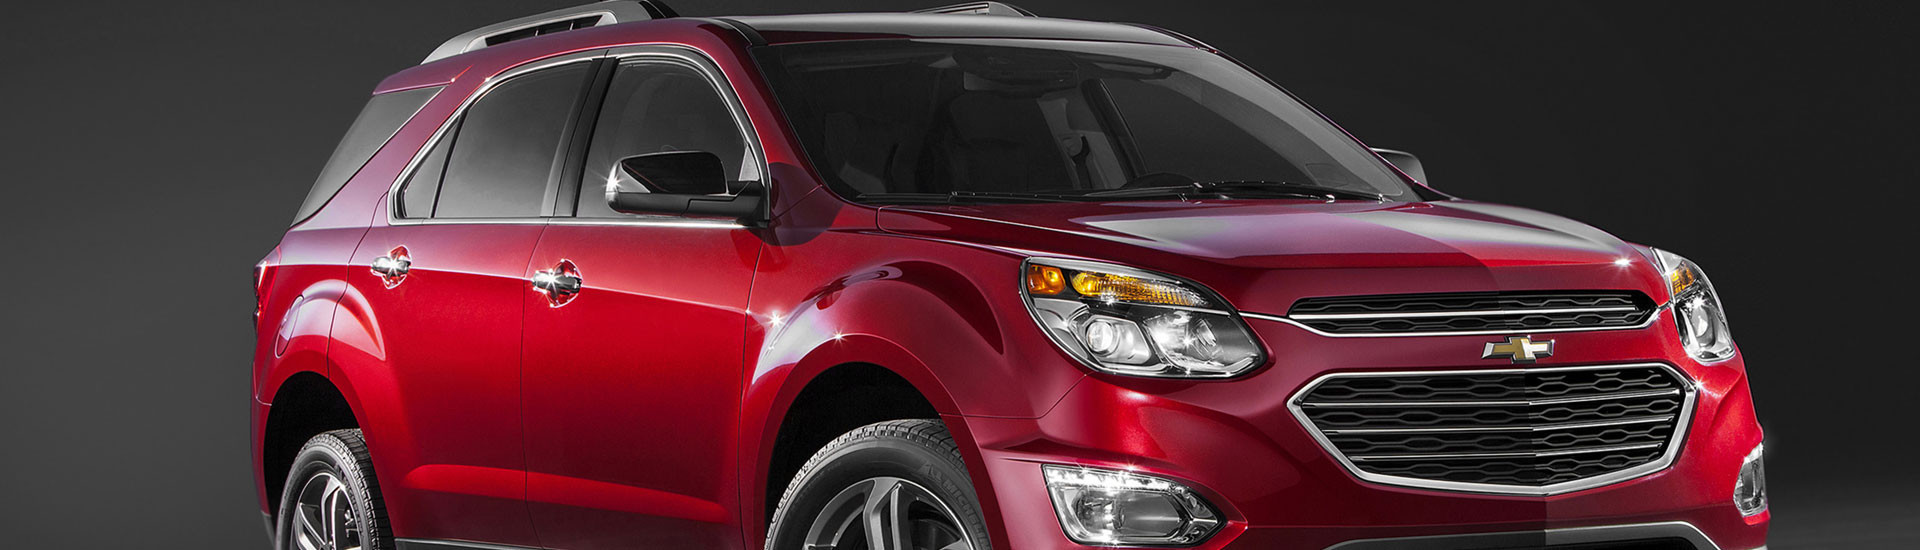 Chevrolet Equinox Window Tint Kit Diy Precut Chevrolet